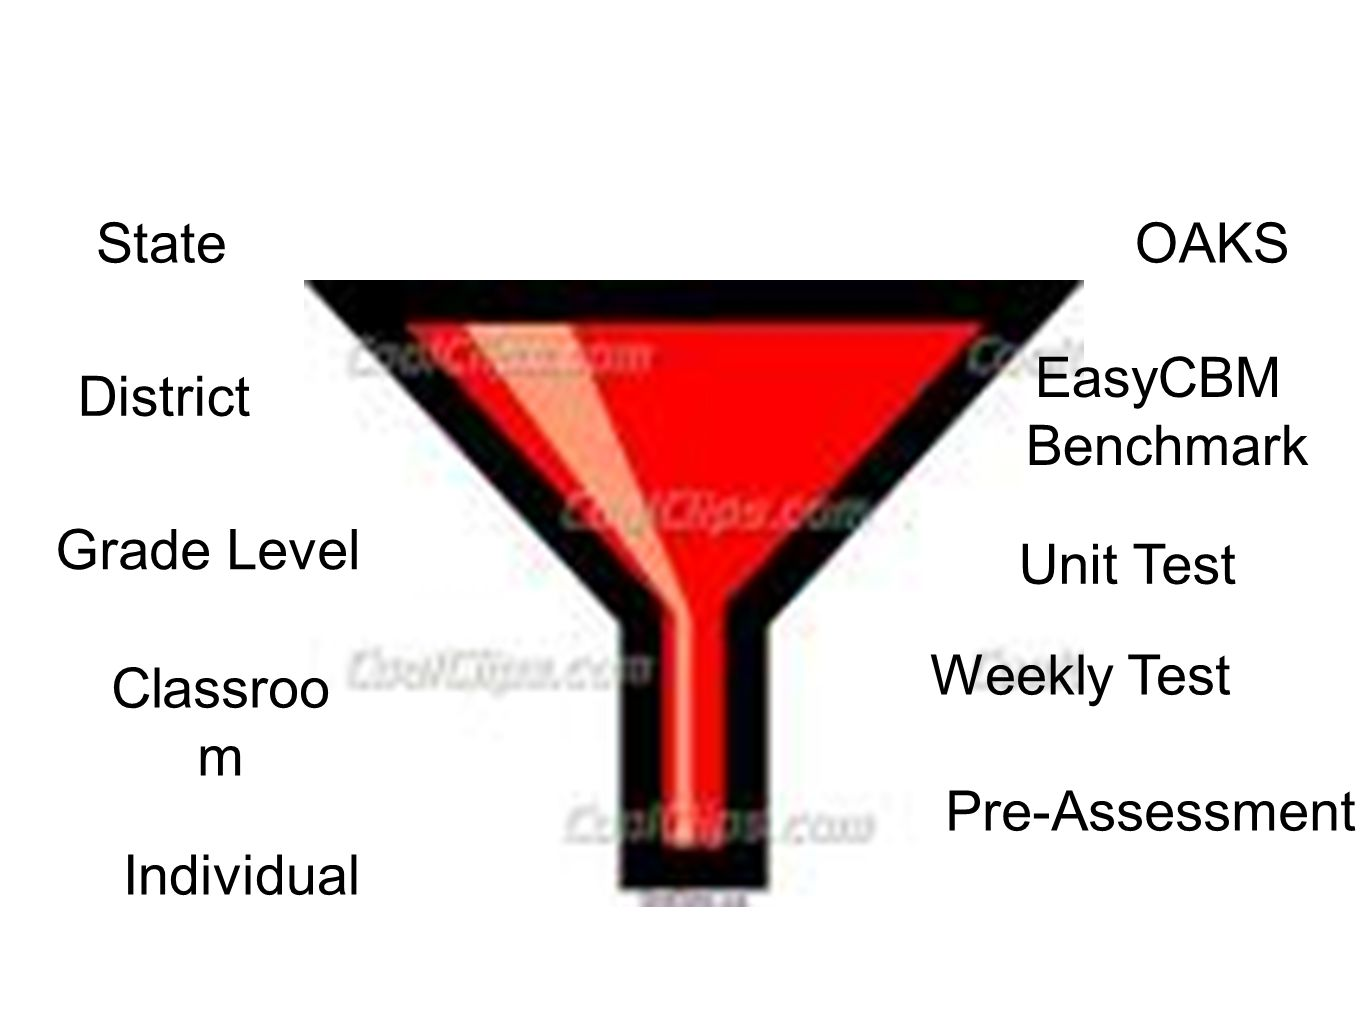 OAKS EasyCBM Benchmark Pre-Assessment Unit Test State District Grade Level Classroo m Individual Weekly Test